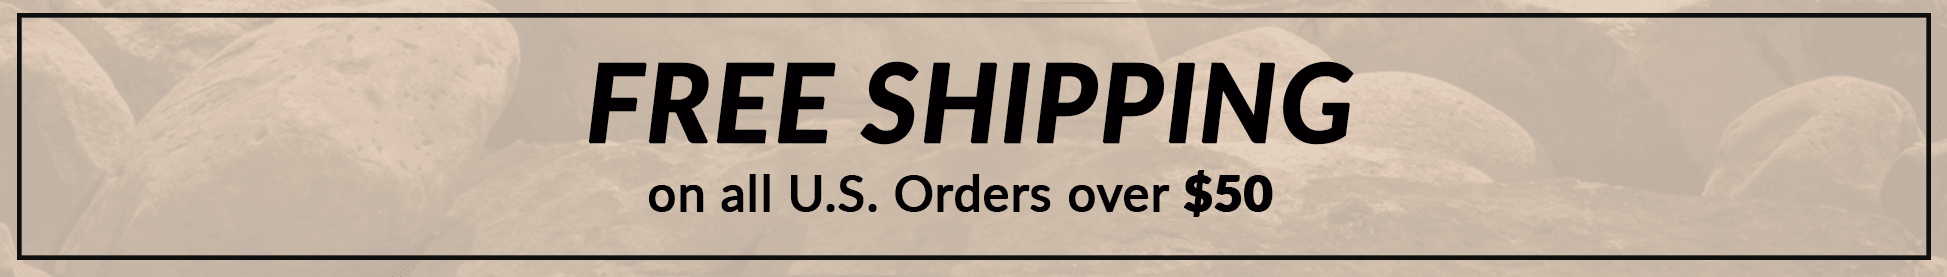 banner-free-shipping-1-compressor